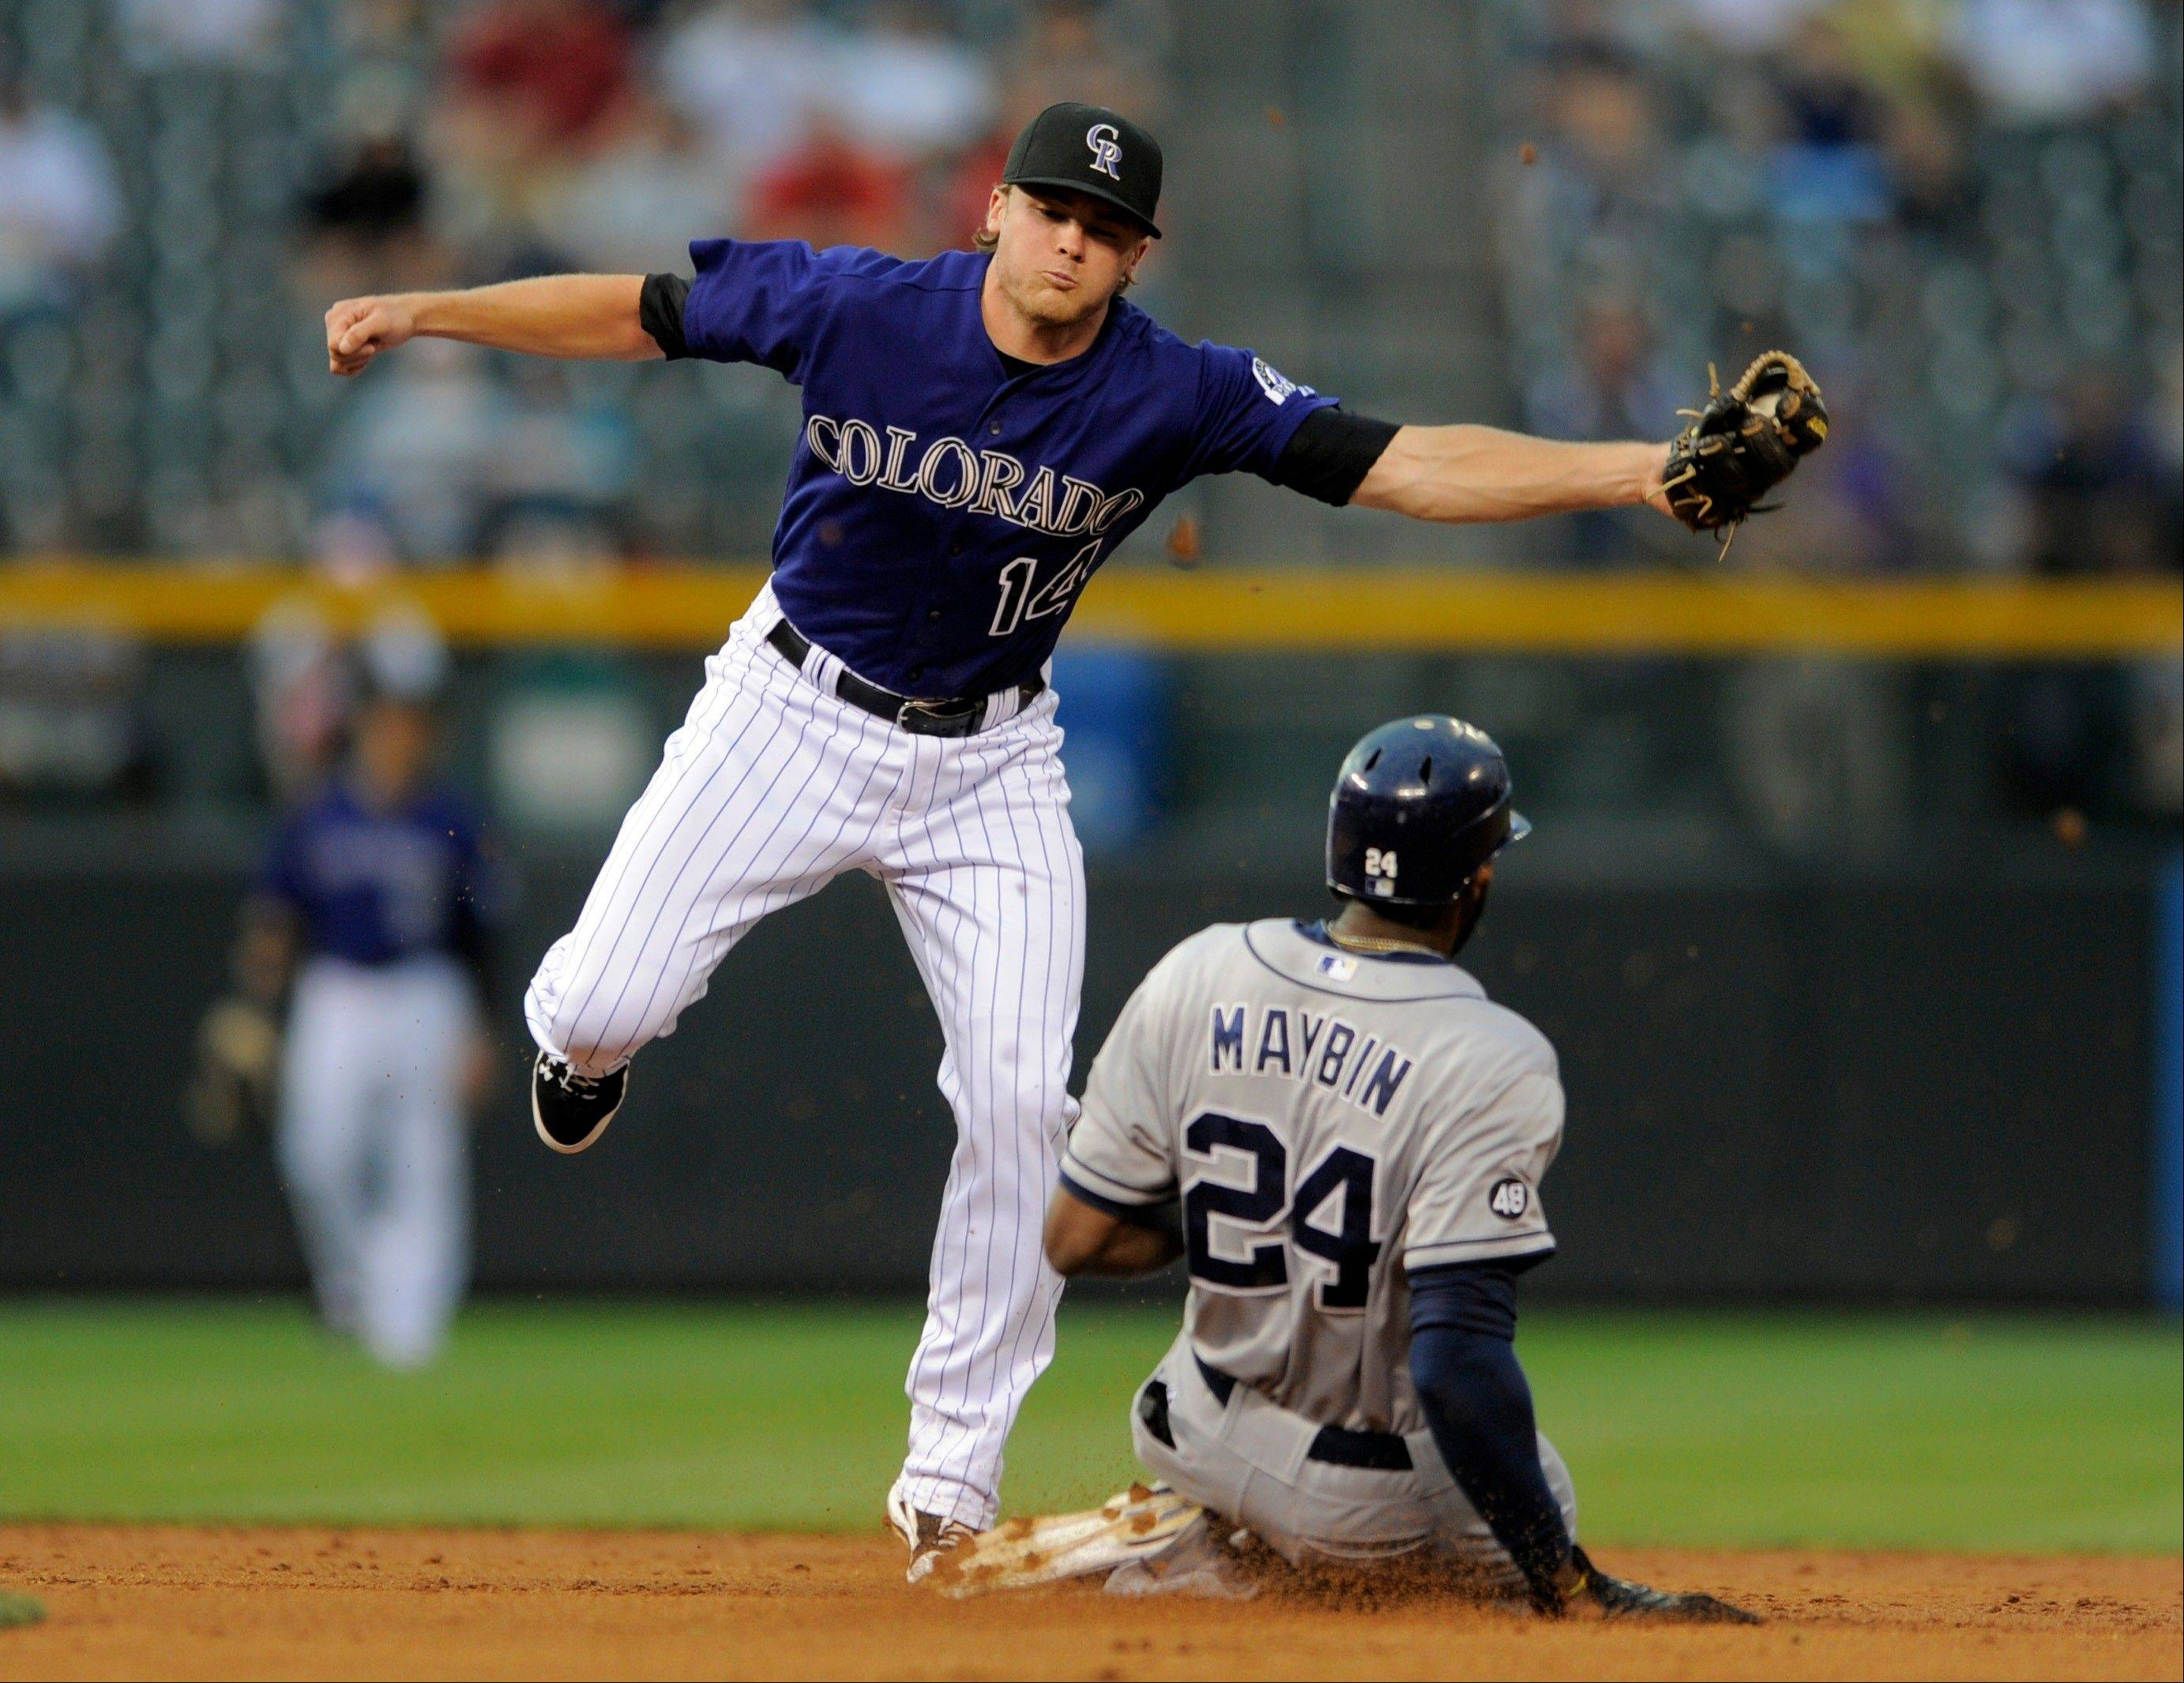 San Diego's Cameron Maybin steals second as Colorado Rockies shortstop Josh Rutledge covers during the second inning Friday in Denver.